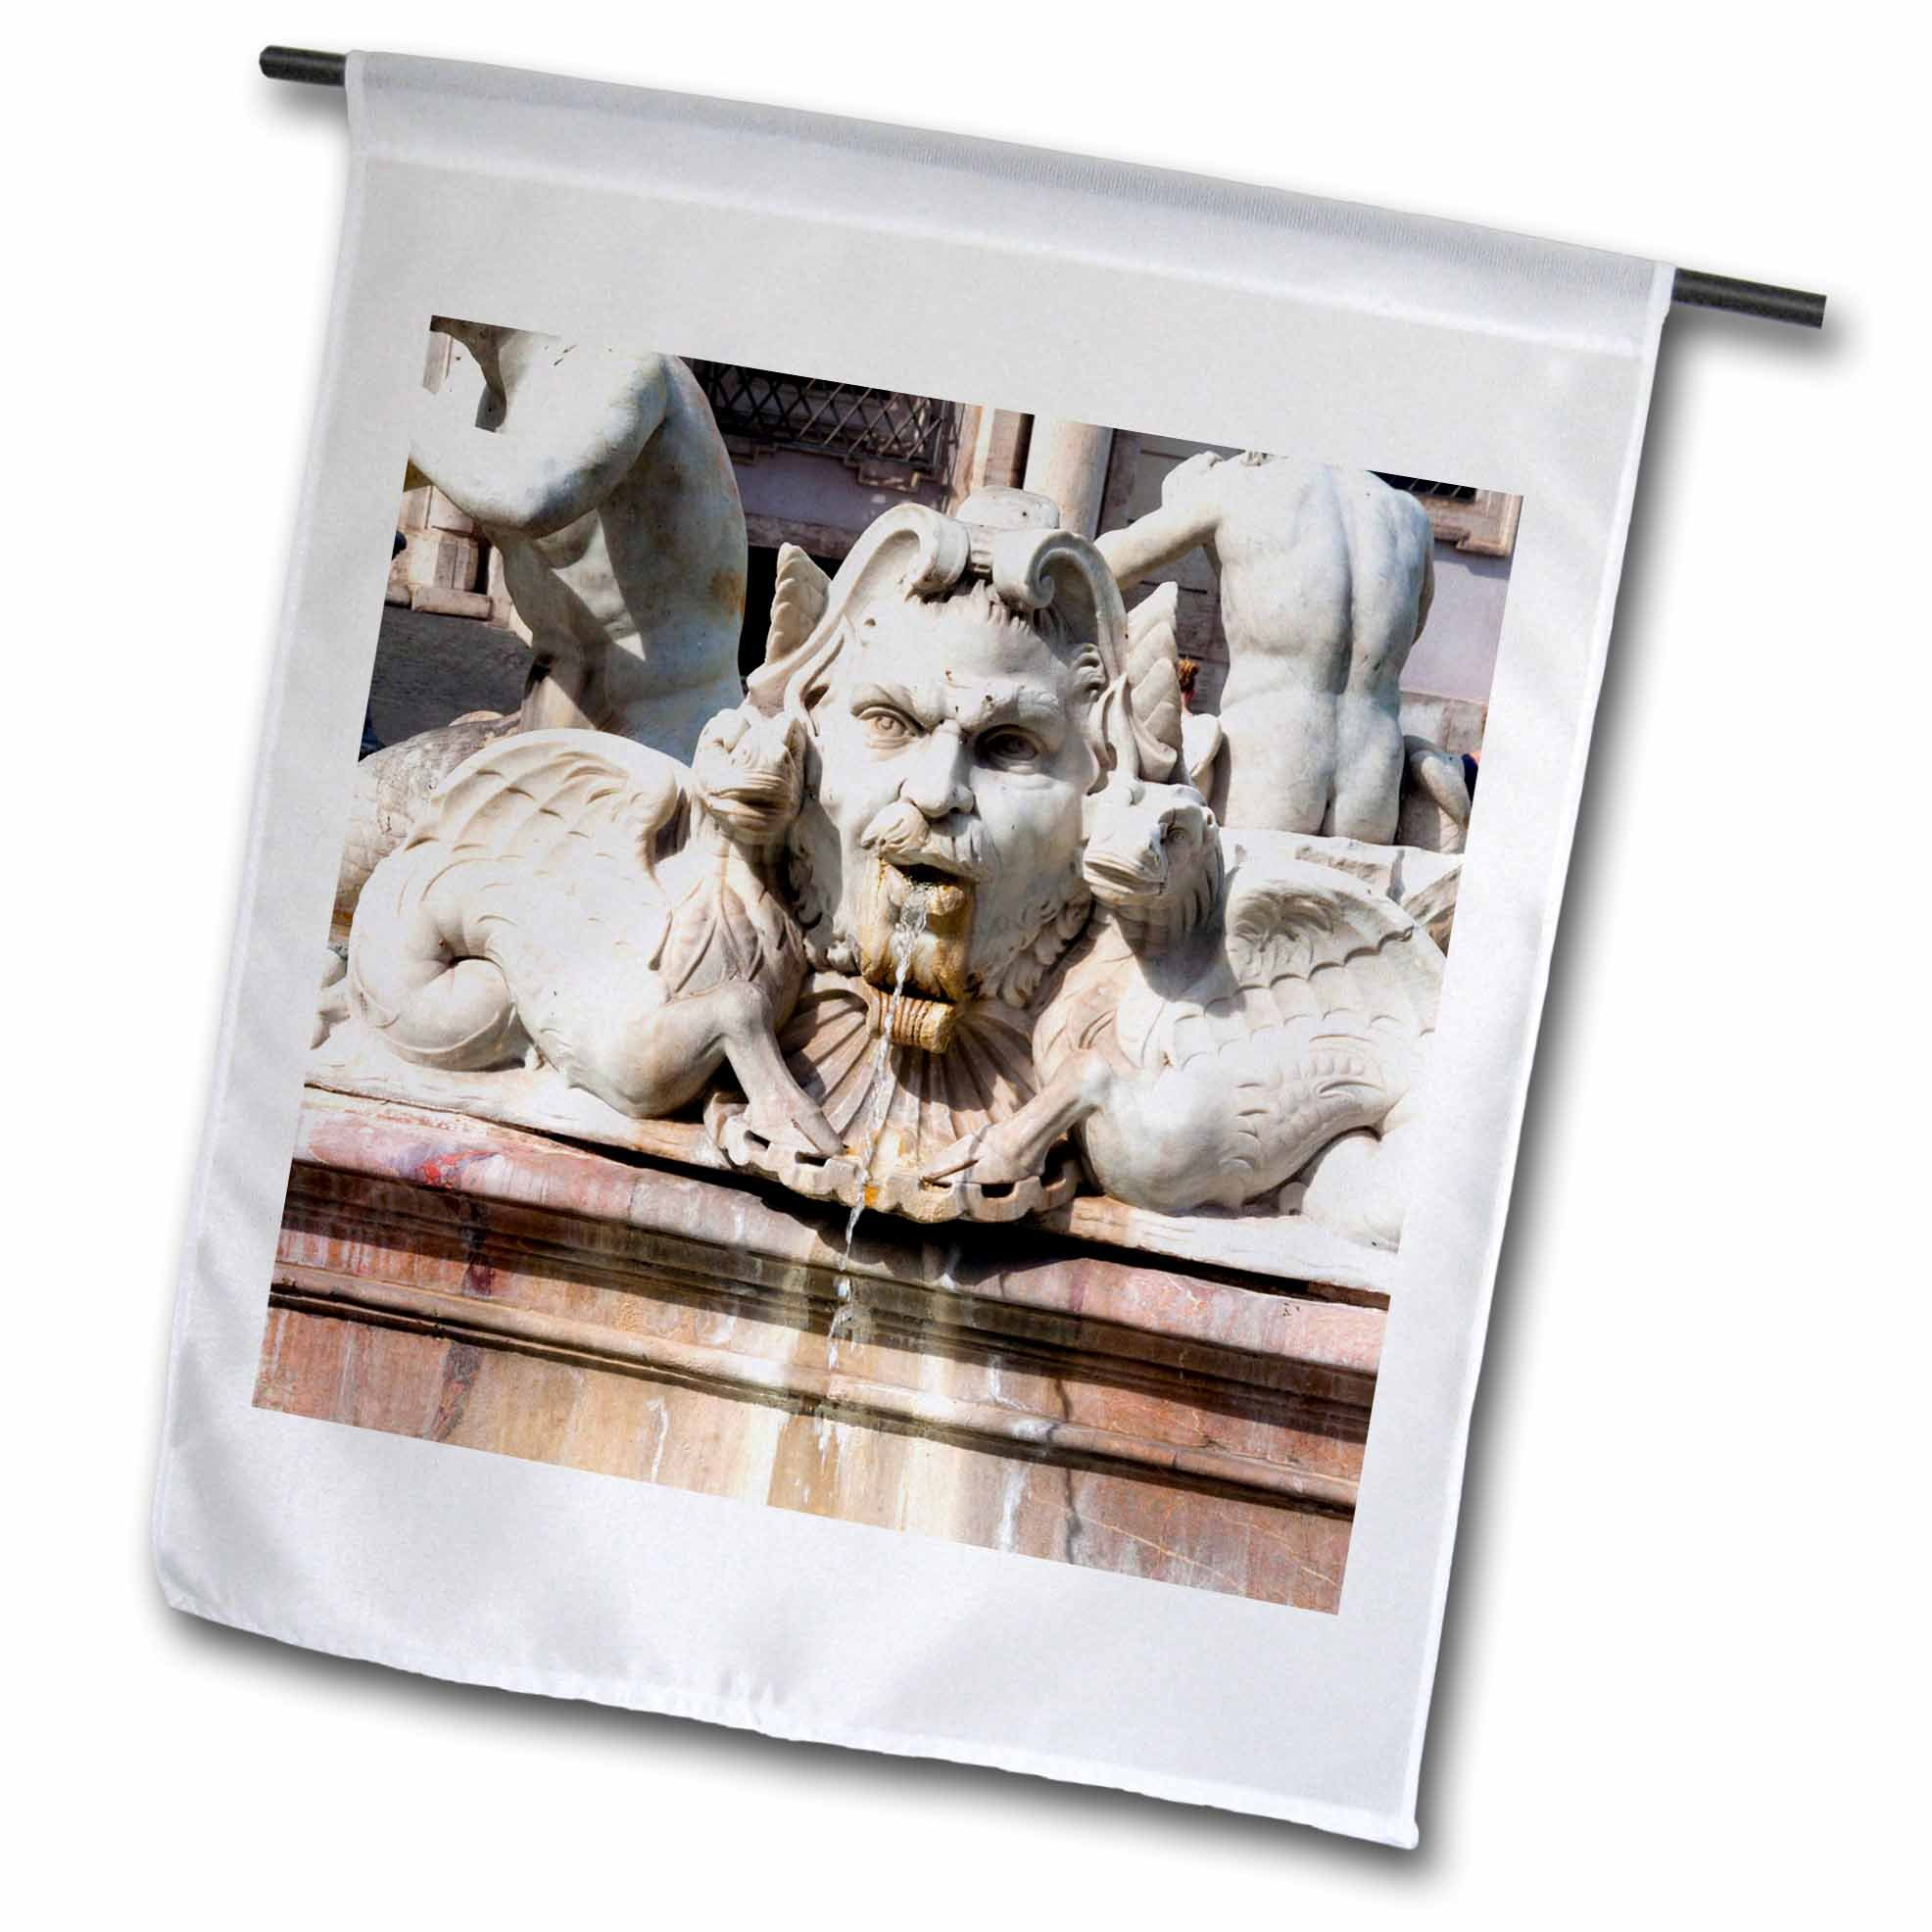 3dRose Danita Delimont - Fountains - The Moor Fountain, Piazza Navona, Rome, Latium, Italy - 18 x 27 inch Garden Flag (fl_277631_2)